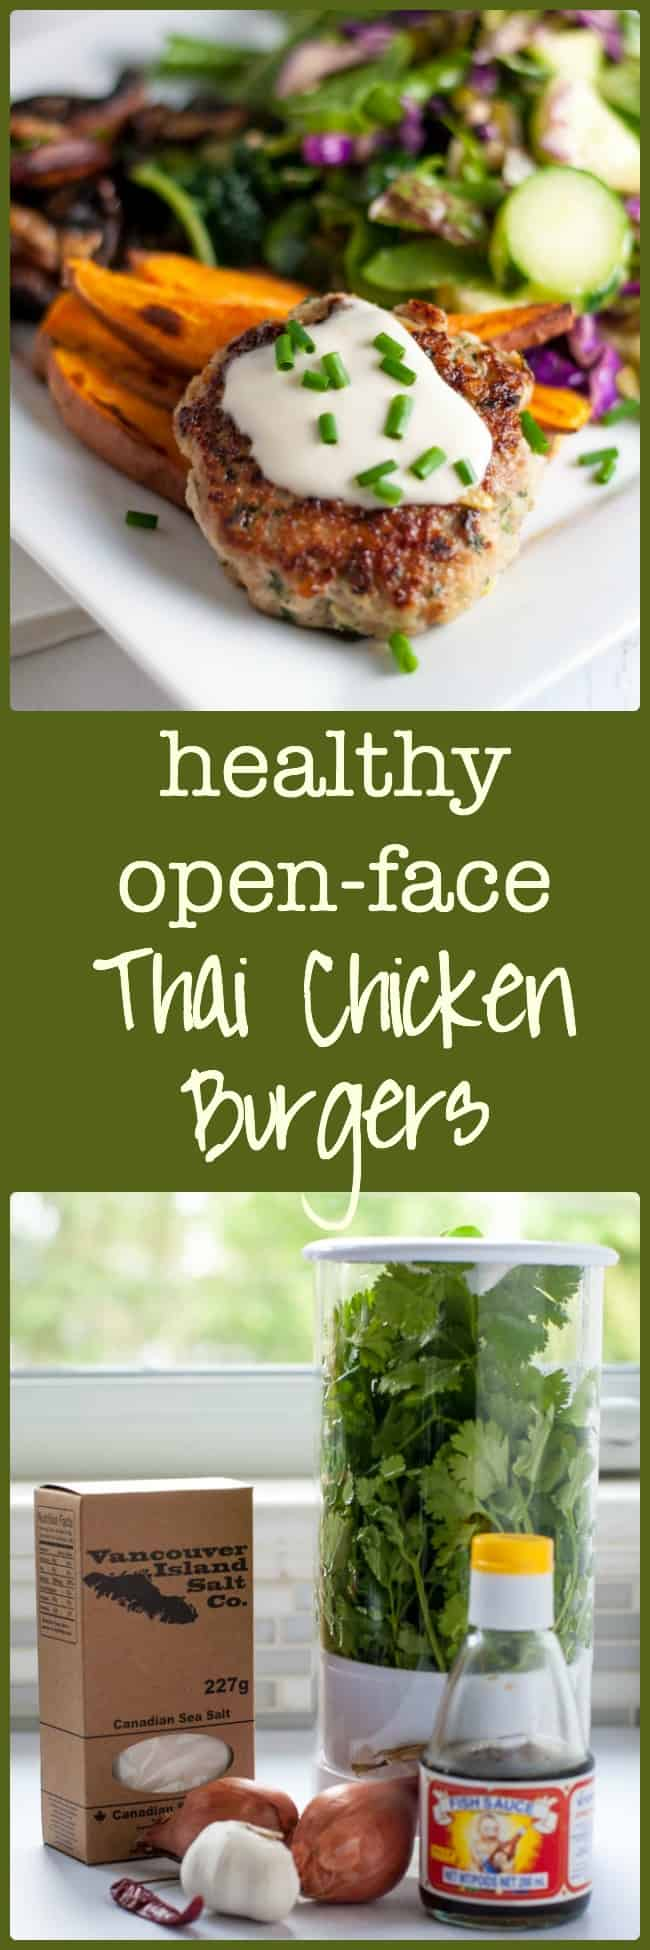 hese Paleo Thai Chicken Burgers are incredibly flavourful and are packed with protein. Serve as an open-face burger with a side salad to make a paleo and gluten-free meal.